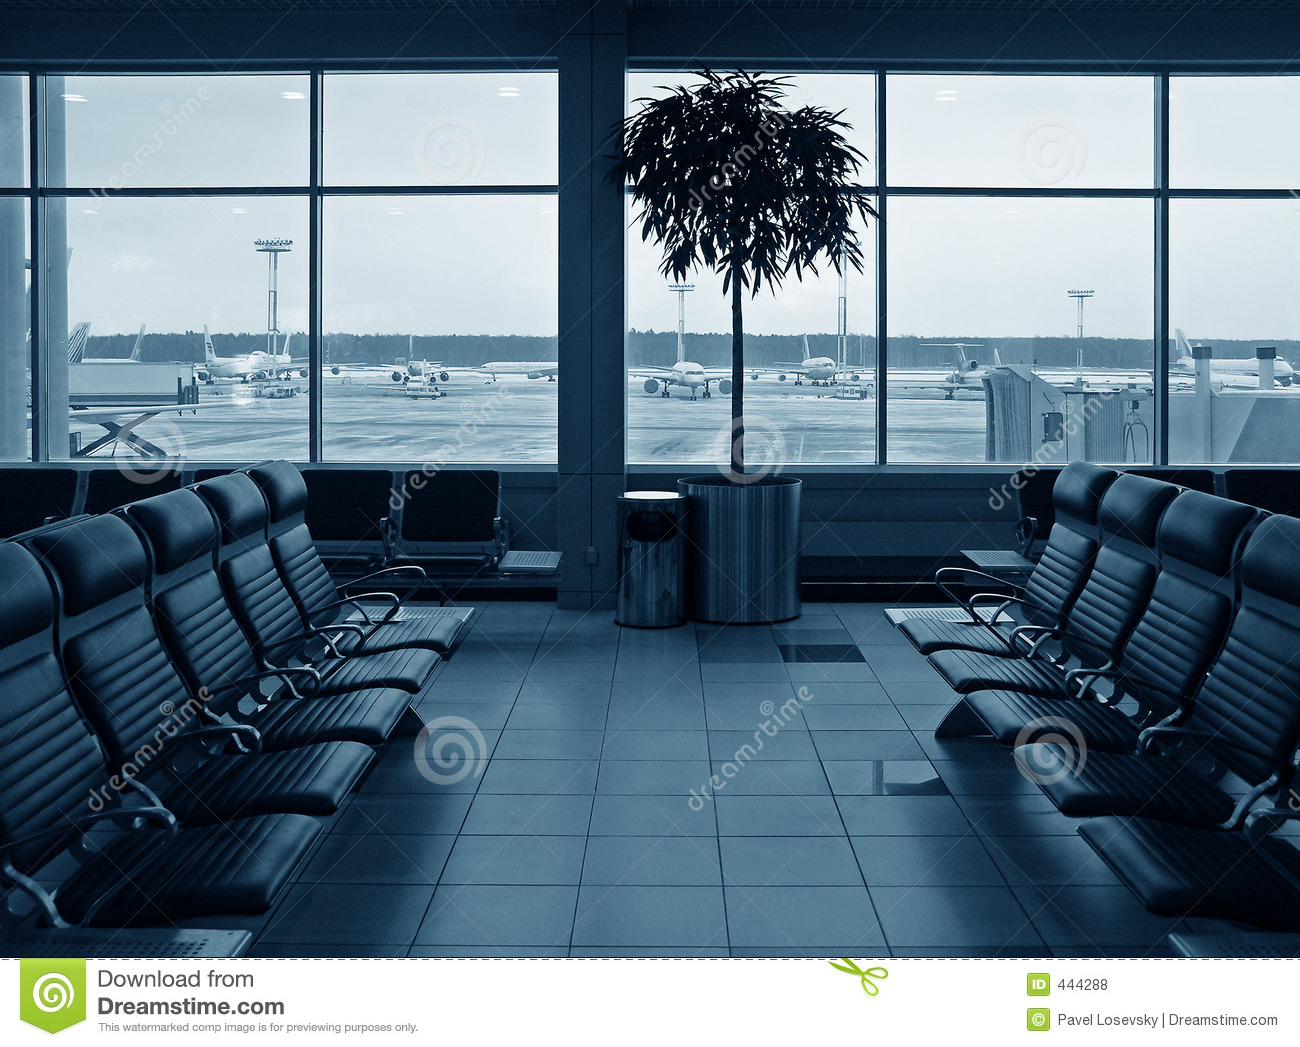 waiting chairs office chair comfortable room airport royalty free stock photos - image: 444288